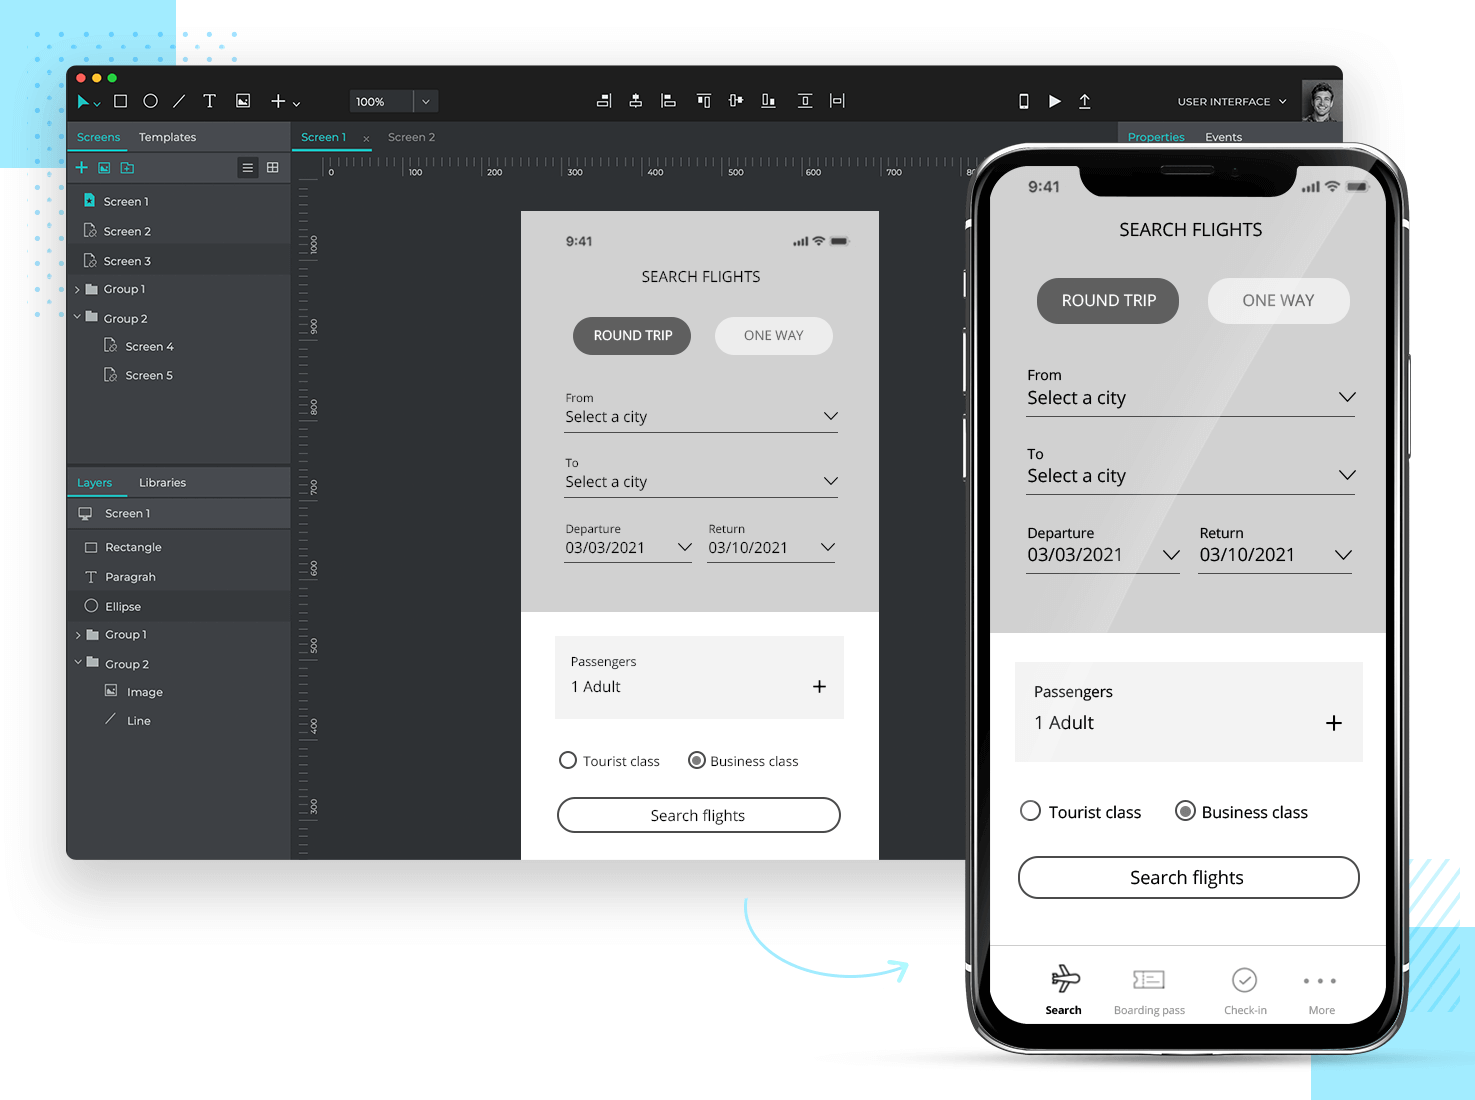 Prototype presentation technique - ensure previewing possible on mobile devices